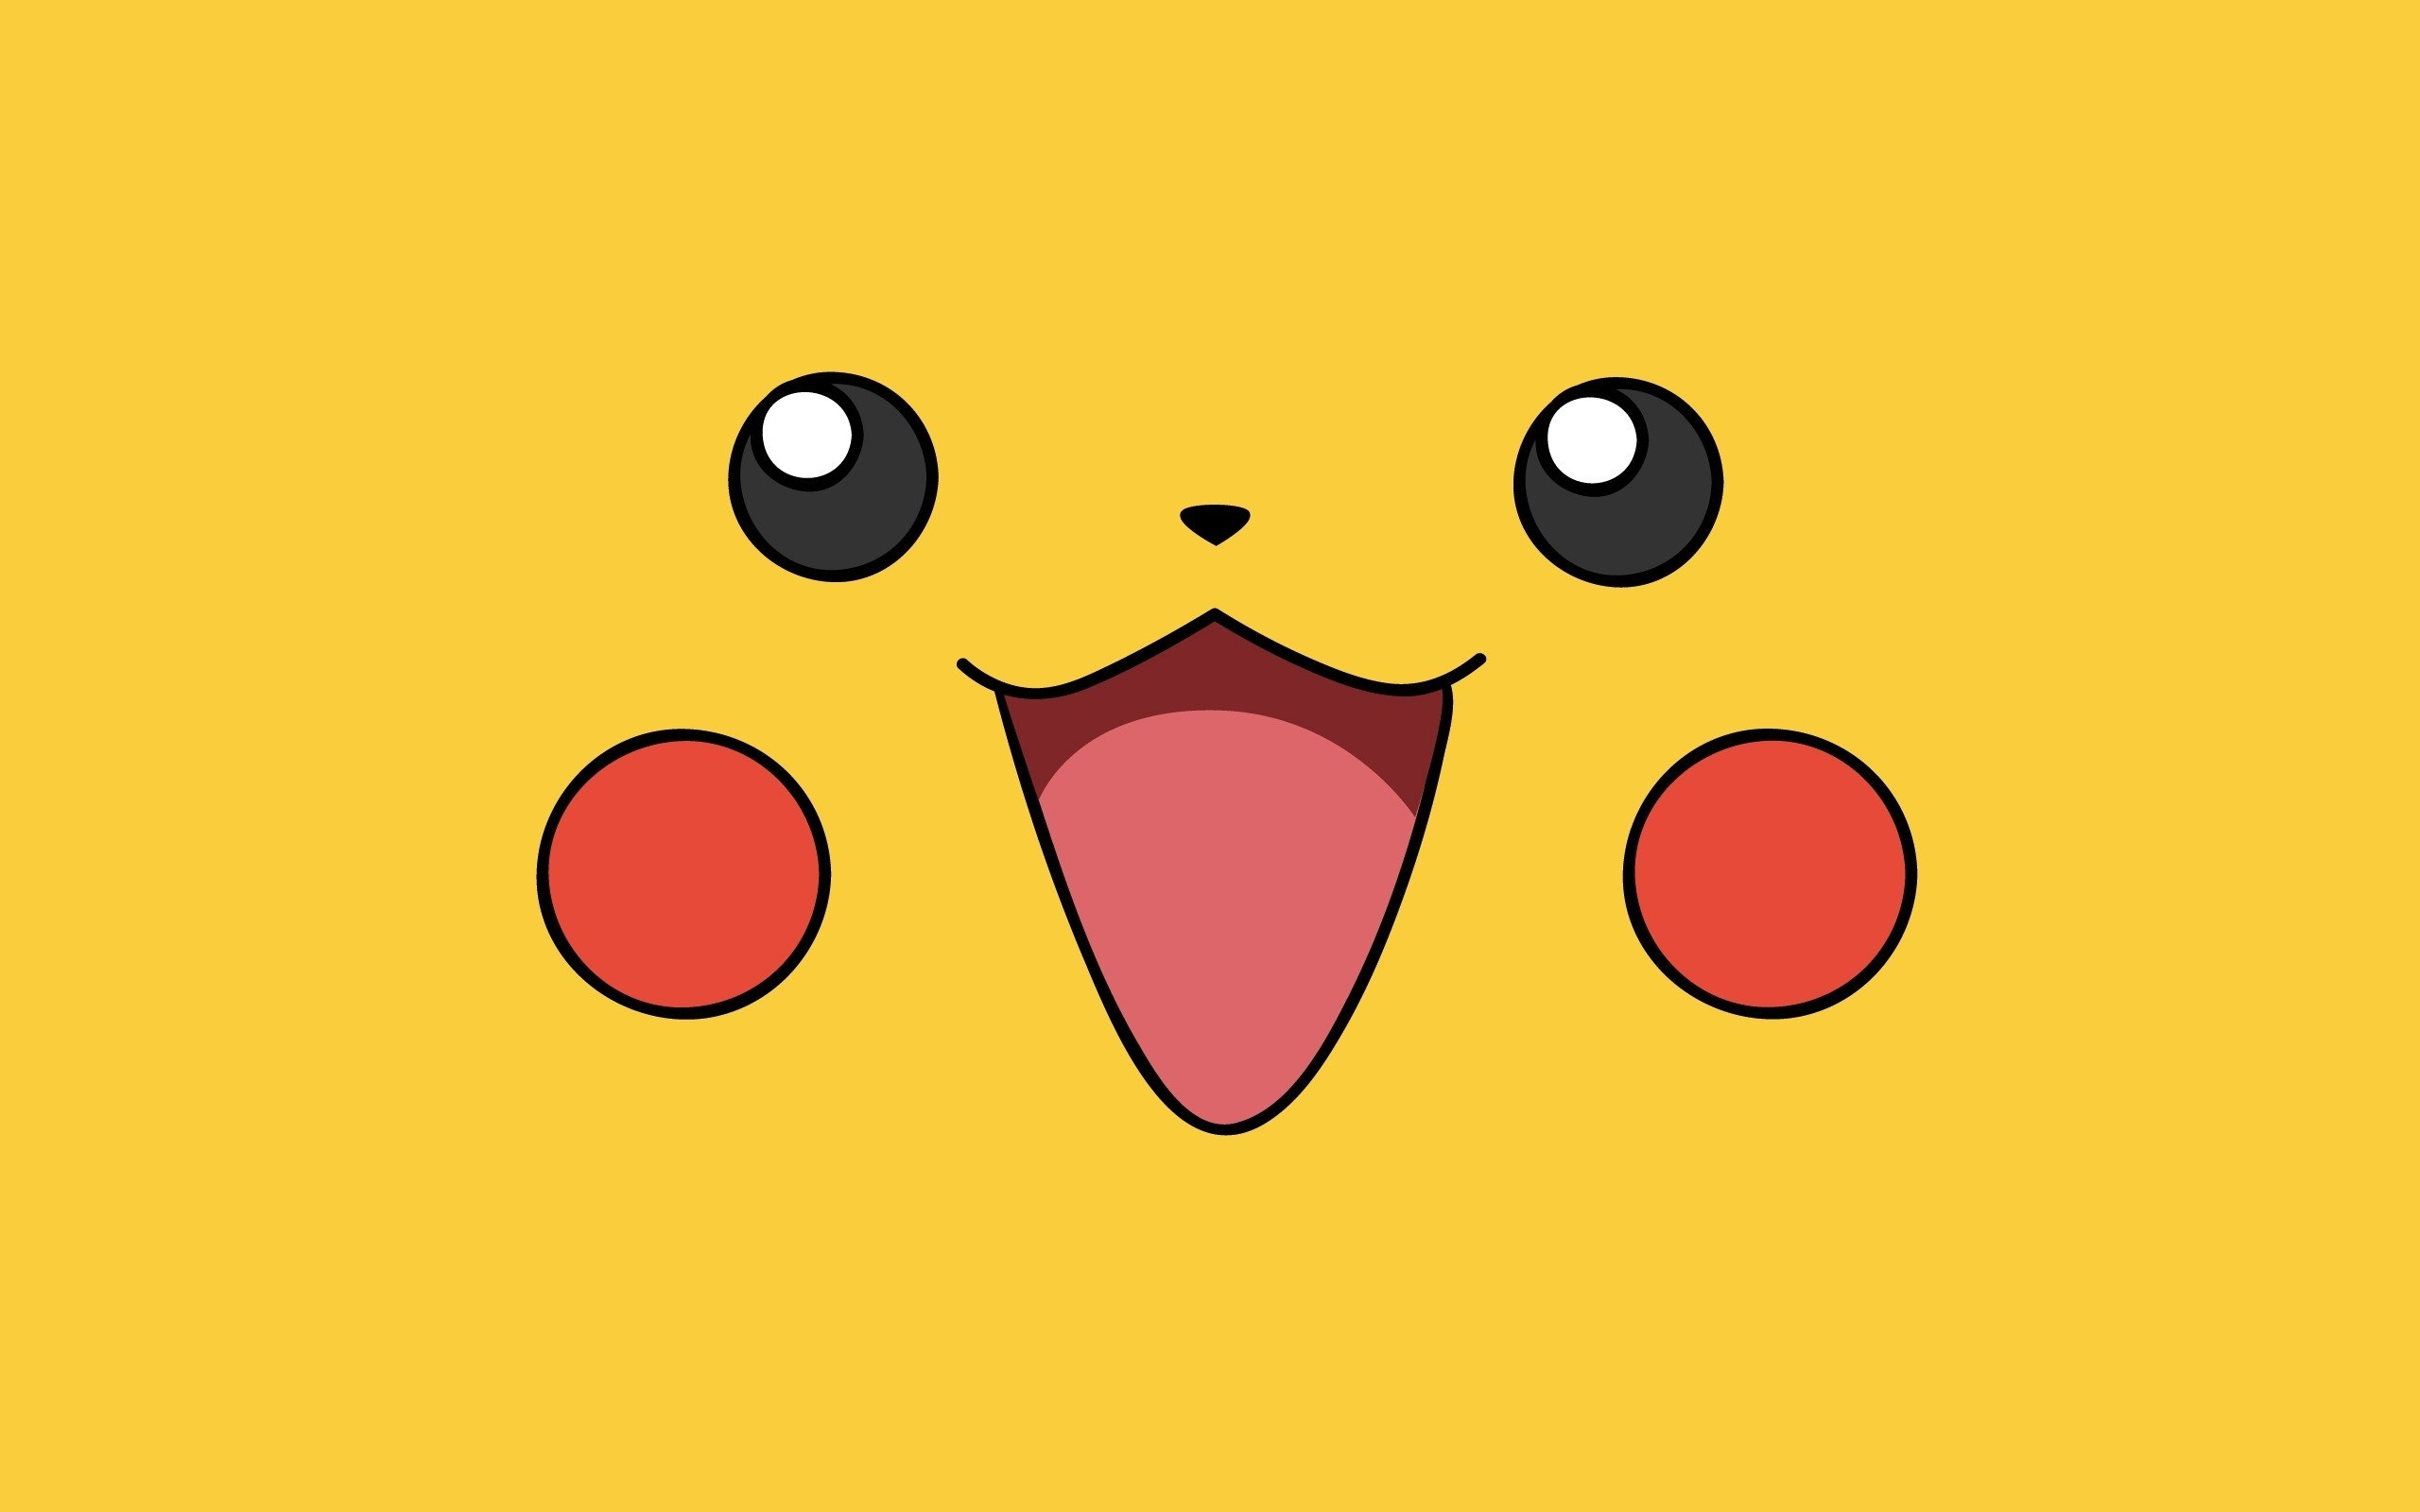 Pikachu Pokemon Cute Face Creative Cartoon